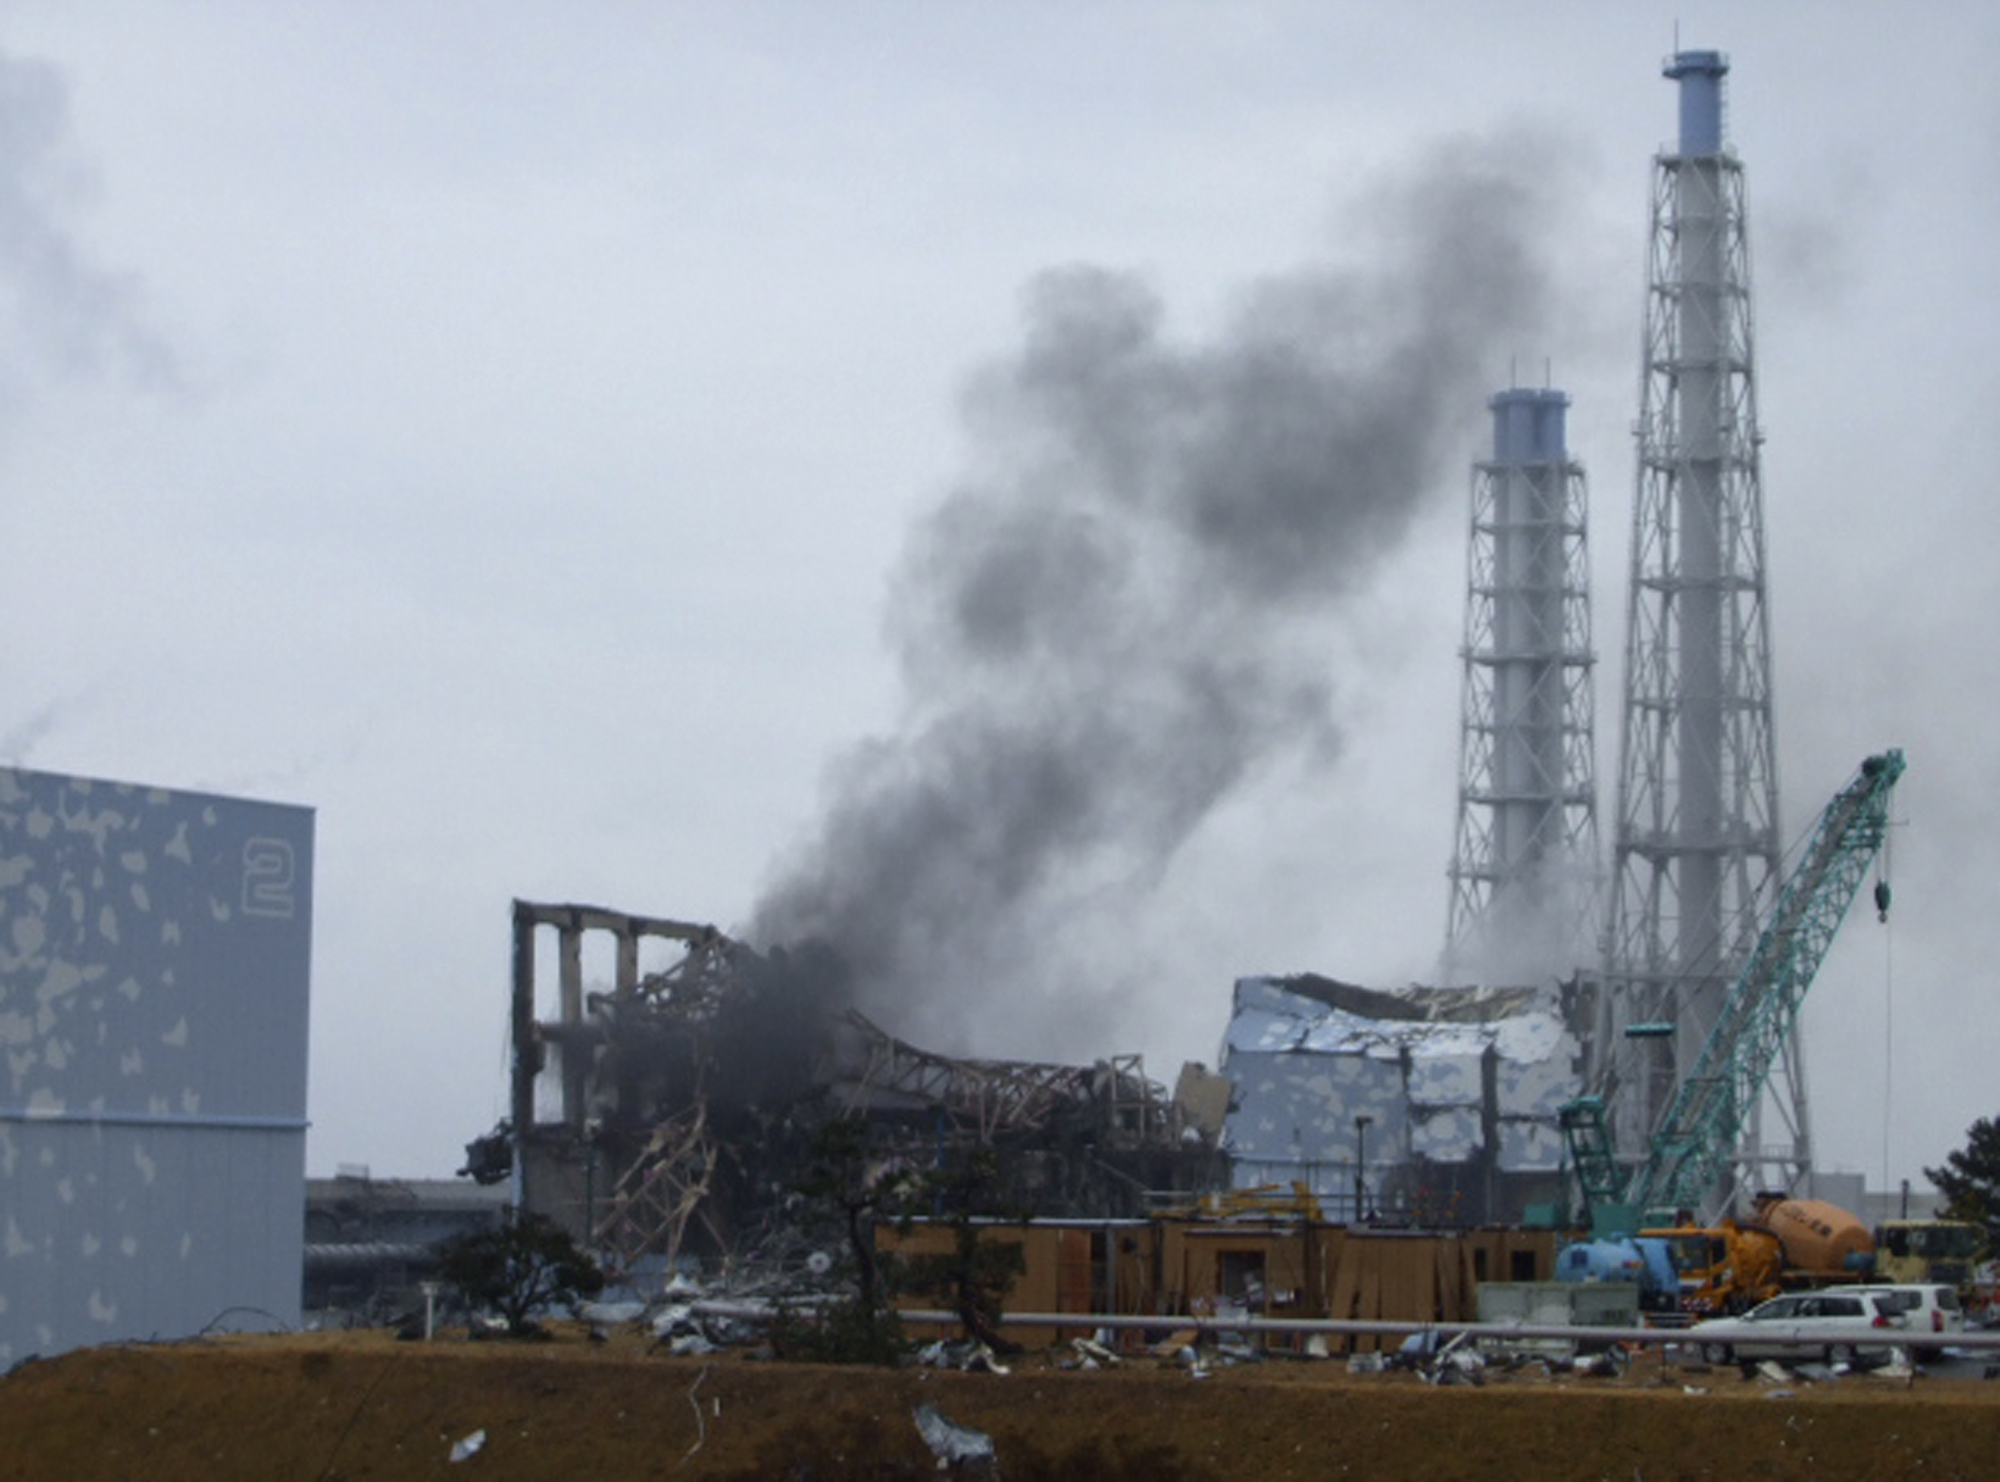 fukushima daiichi nuclear disaster On thursday, 2 june 2011, the iaea provided the following information on the status of nuclear safety in japan: overall, the situation at the fukushima daiichi.